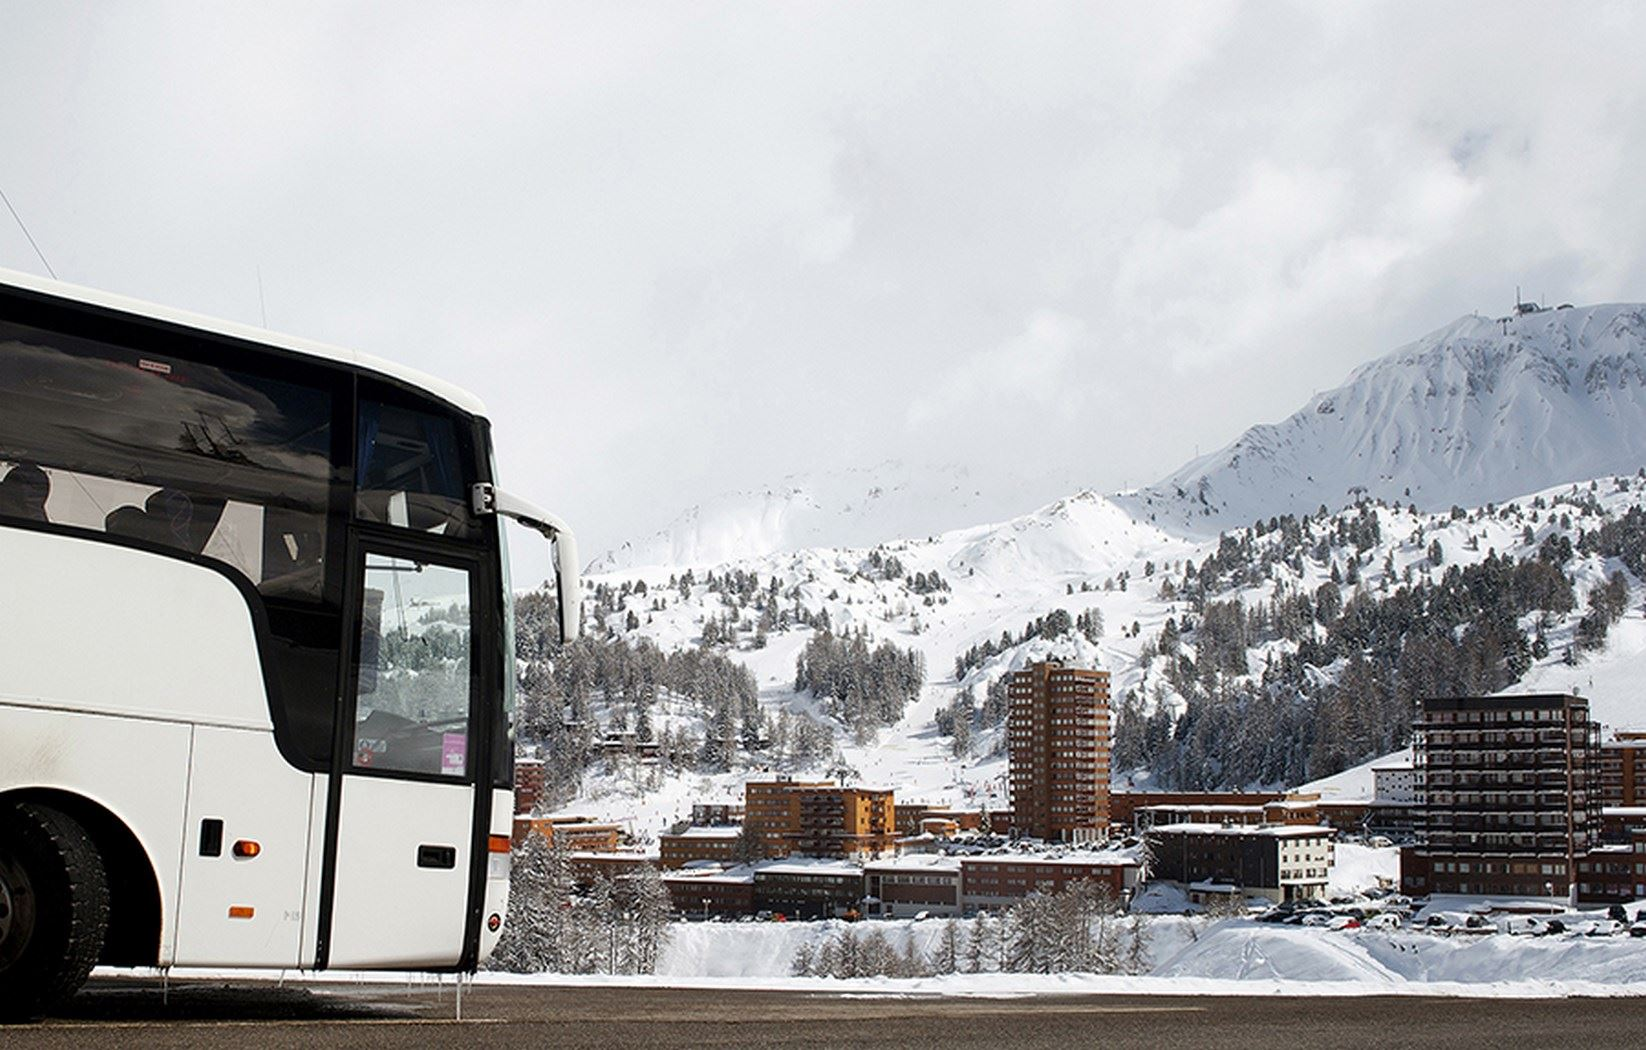 Val Thorens Place des Arolles --> Moutiers Train Station: 03:30 PM